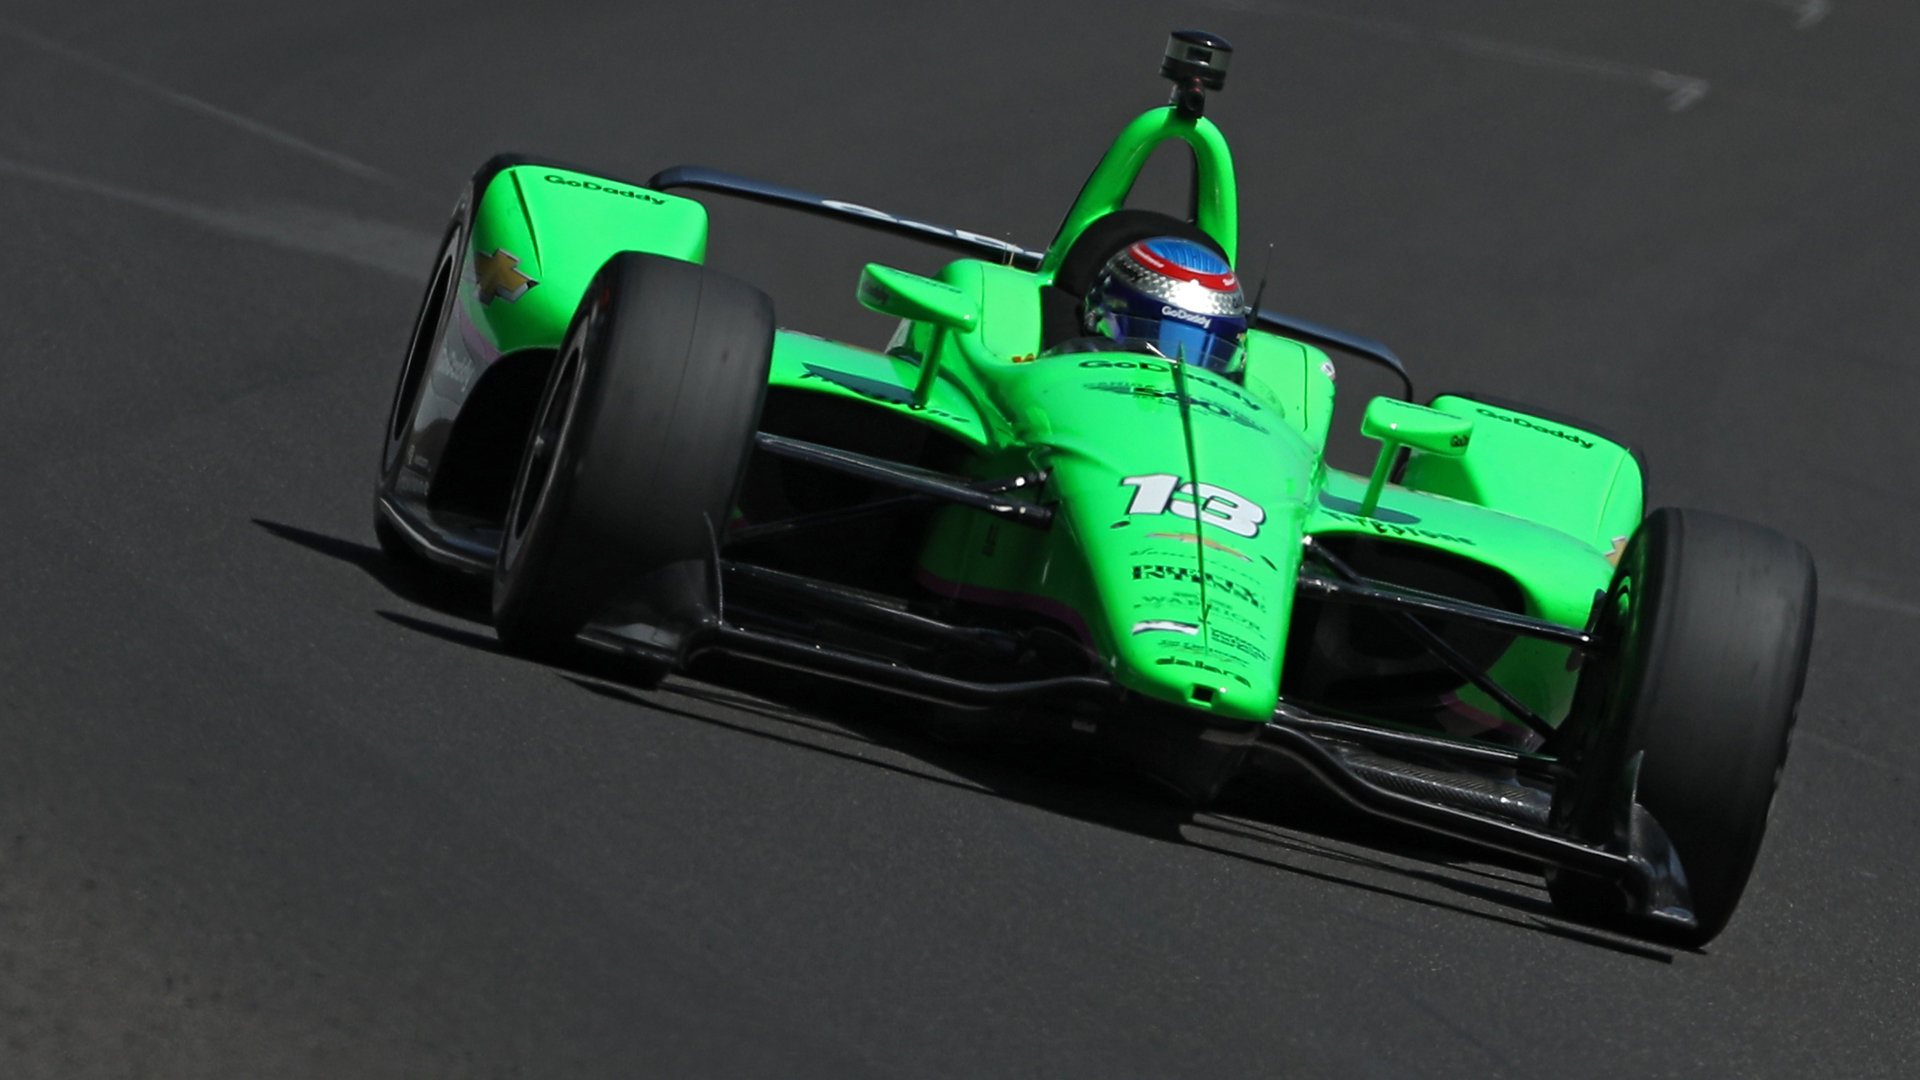 Danica Patrick crashes out of 2018 Indianapolis 500